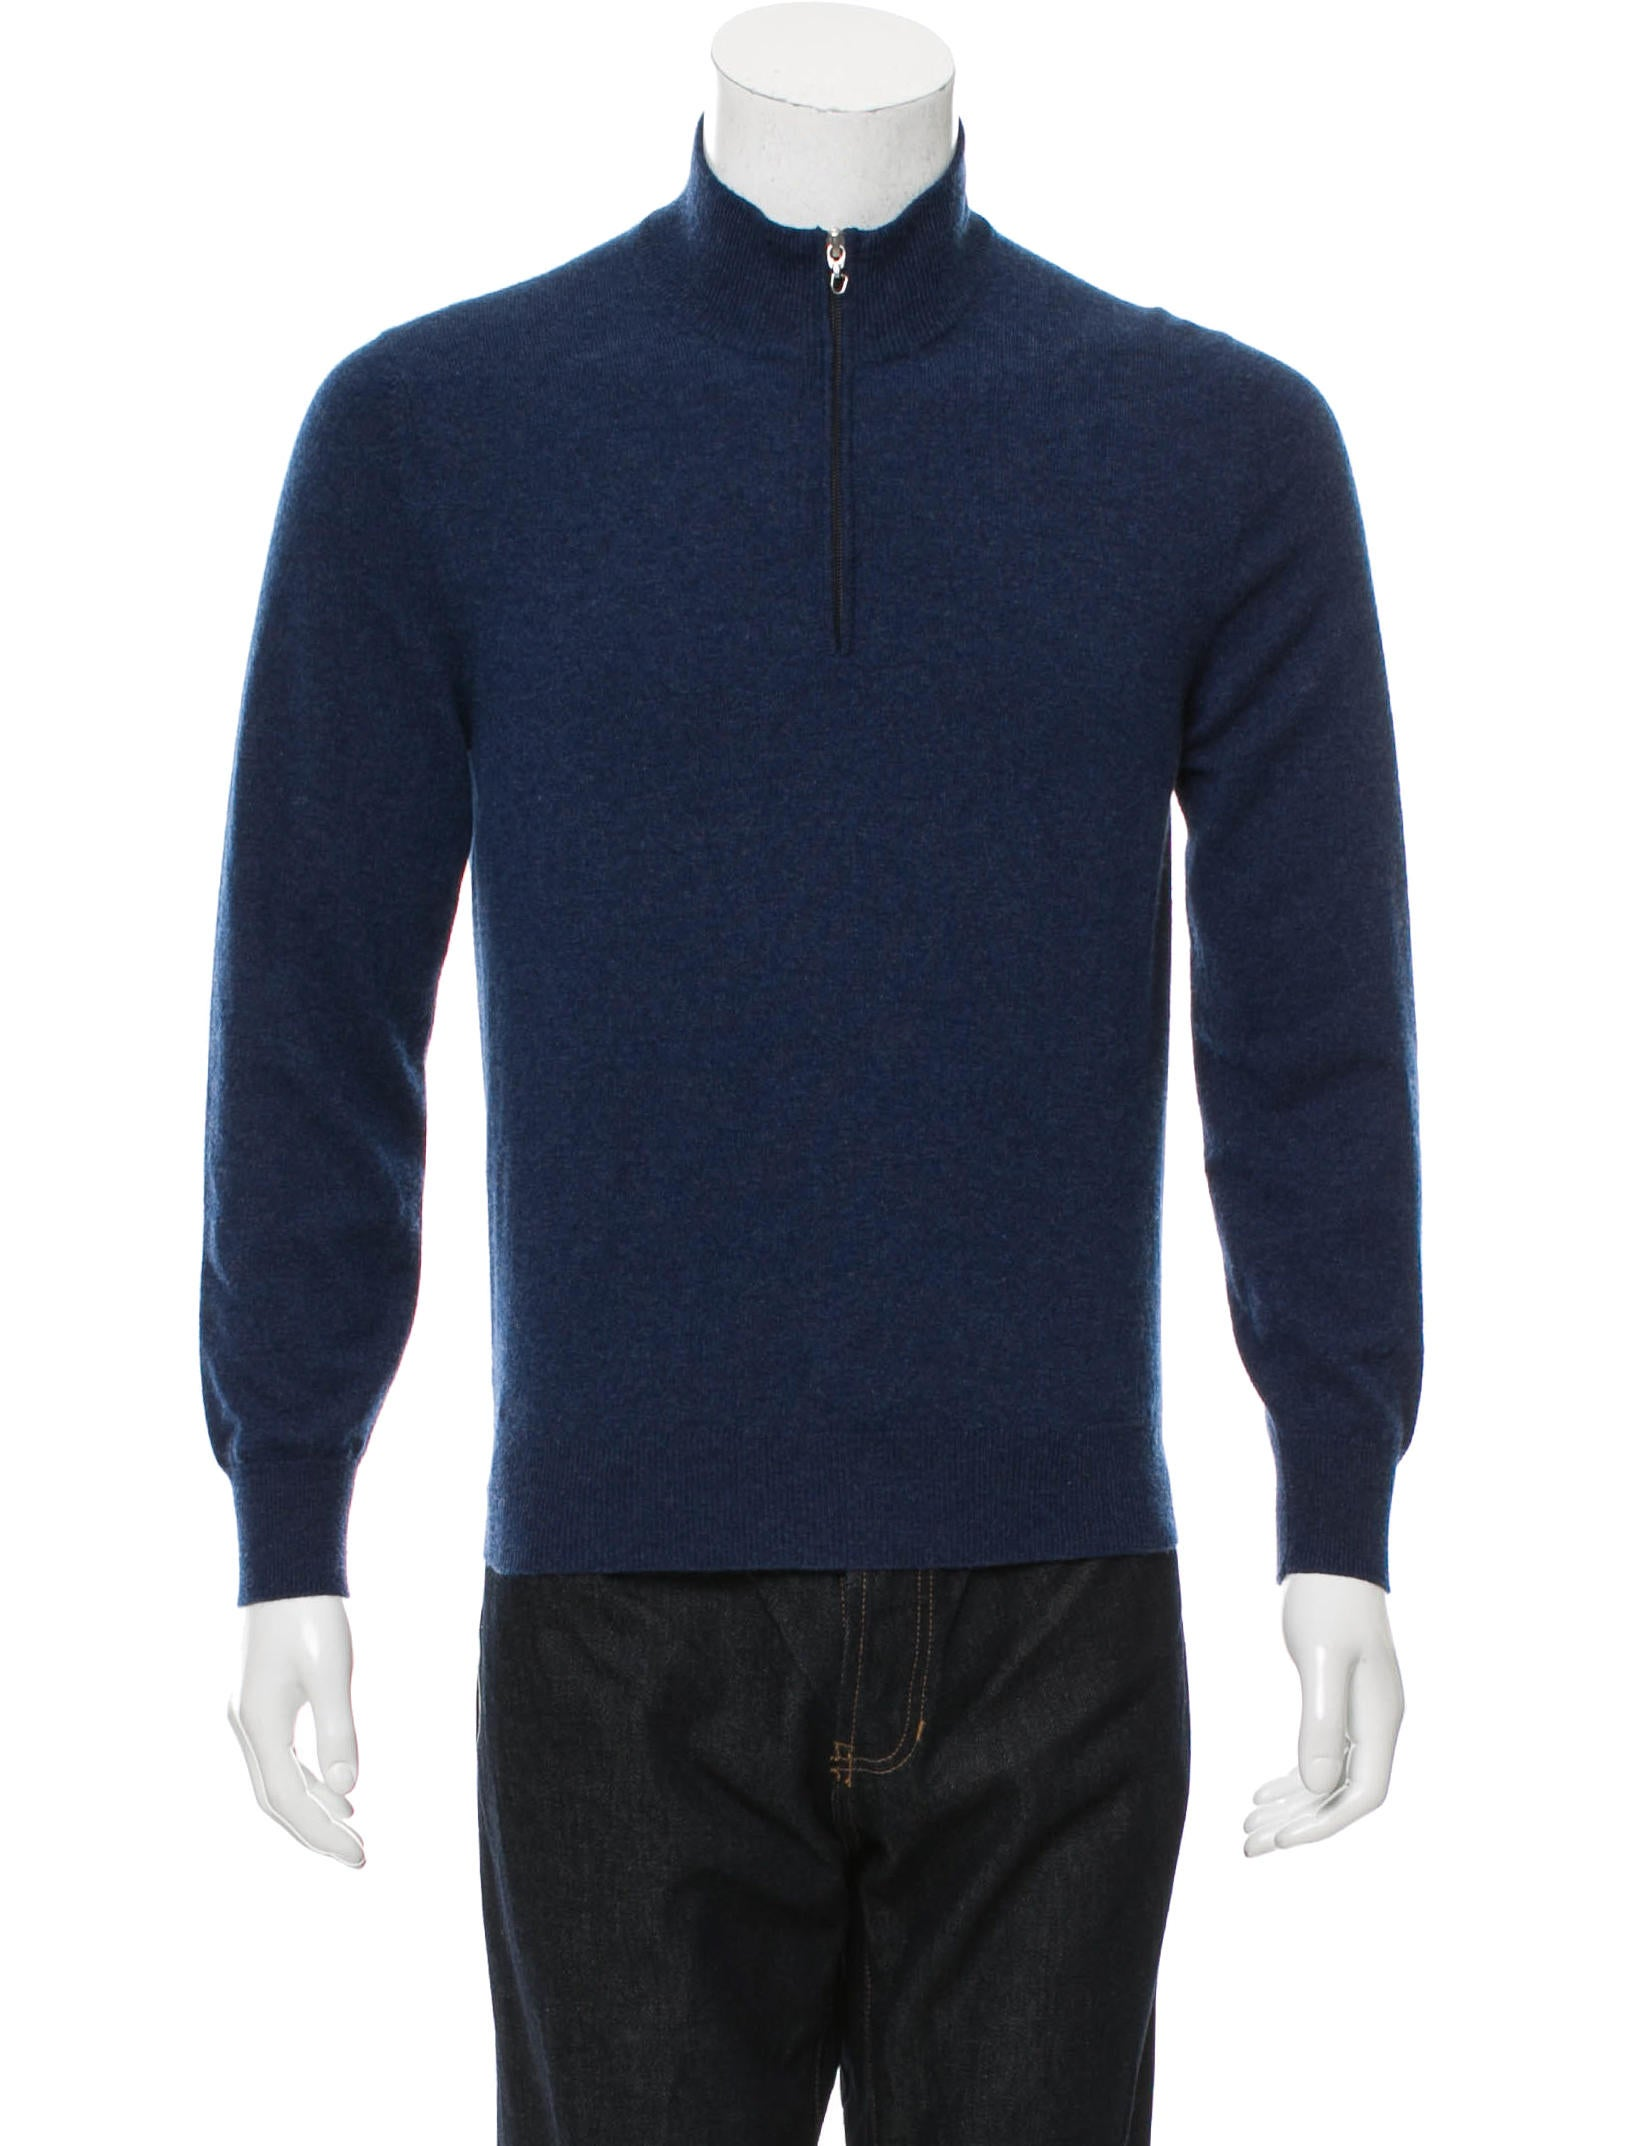 Brunello Cucinelli Cashmere Half-Zip Sweater - Clothing - BRU44206 | The RealReal